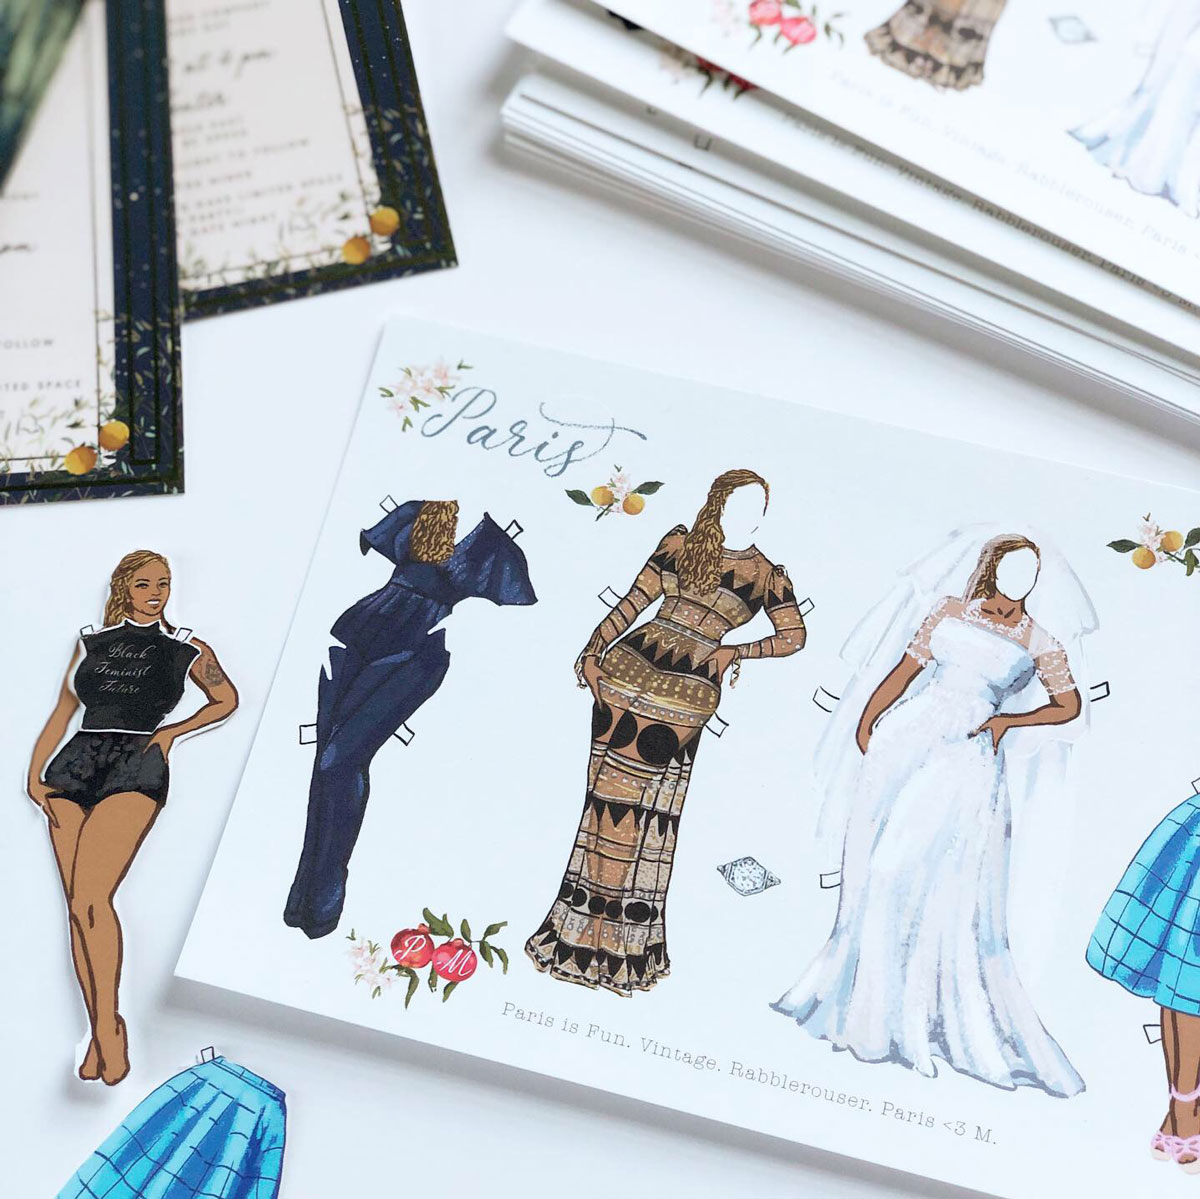 south-carolina-paper-dolls-pride-wedding-jolly-edition-3